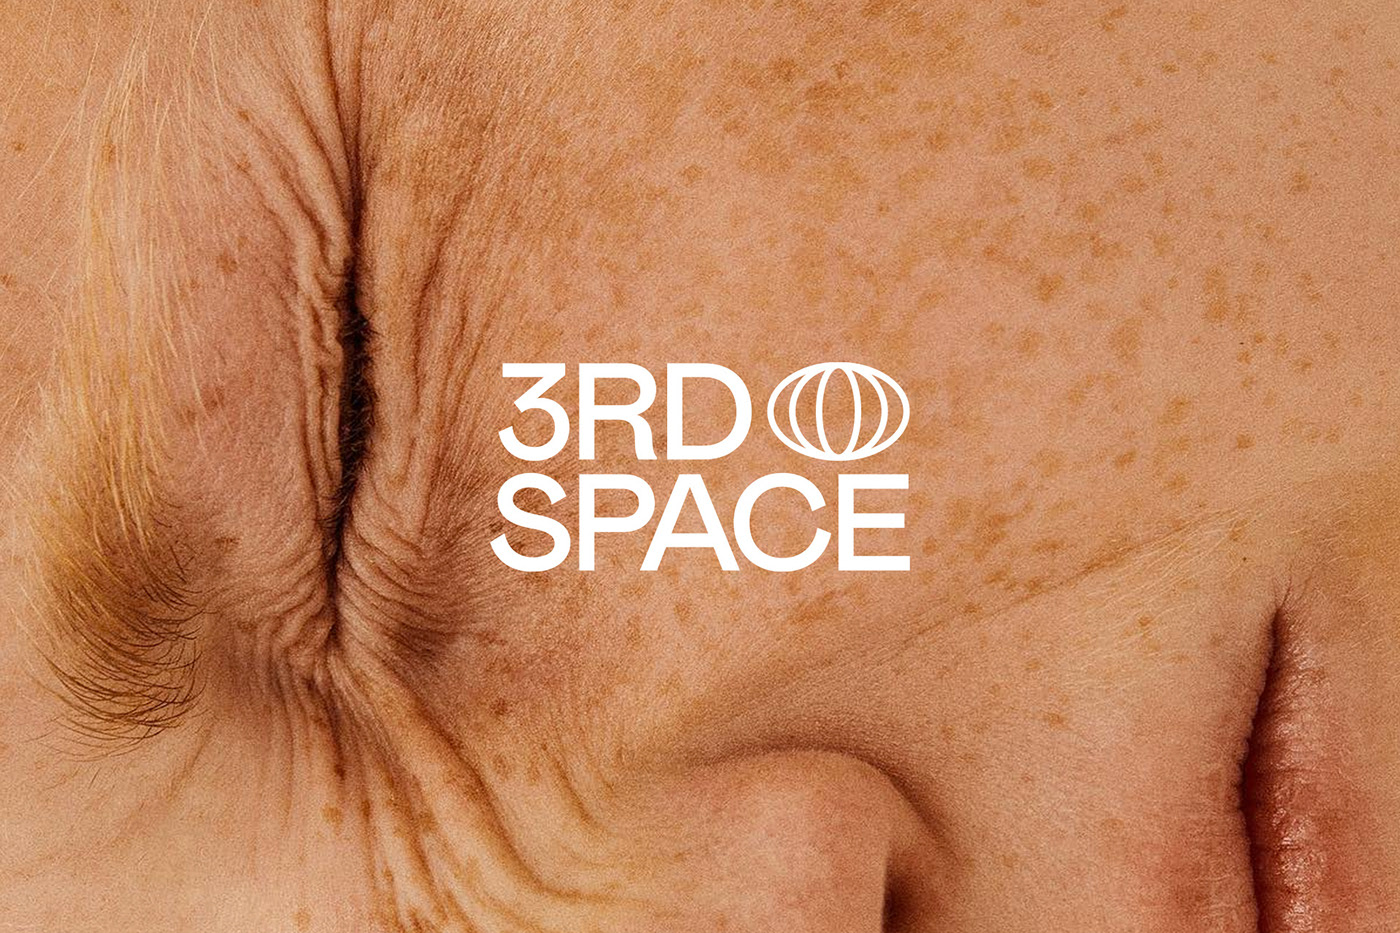 Thumbnail for 3rd Space Mgmt Visually Showcases Third Space Theory